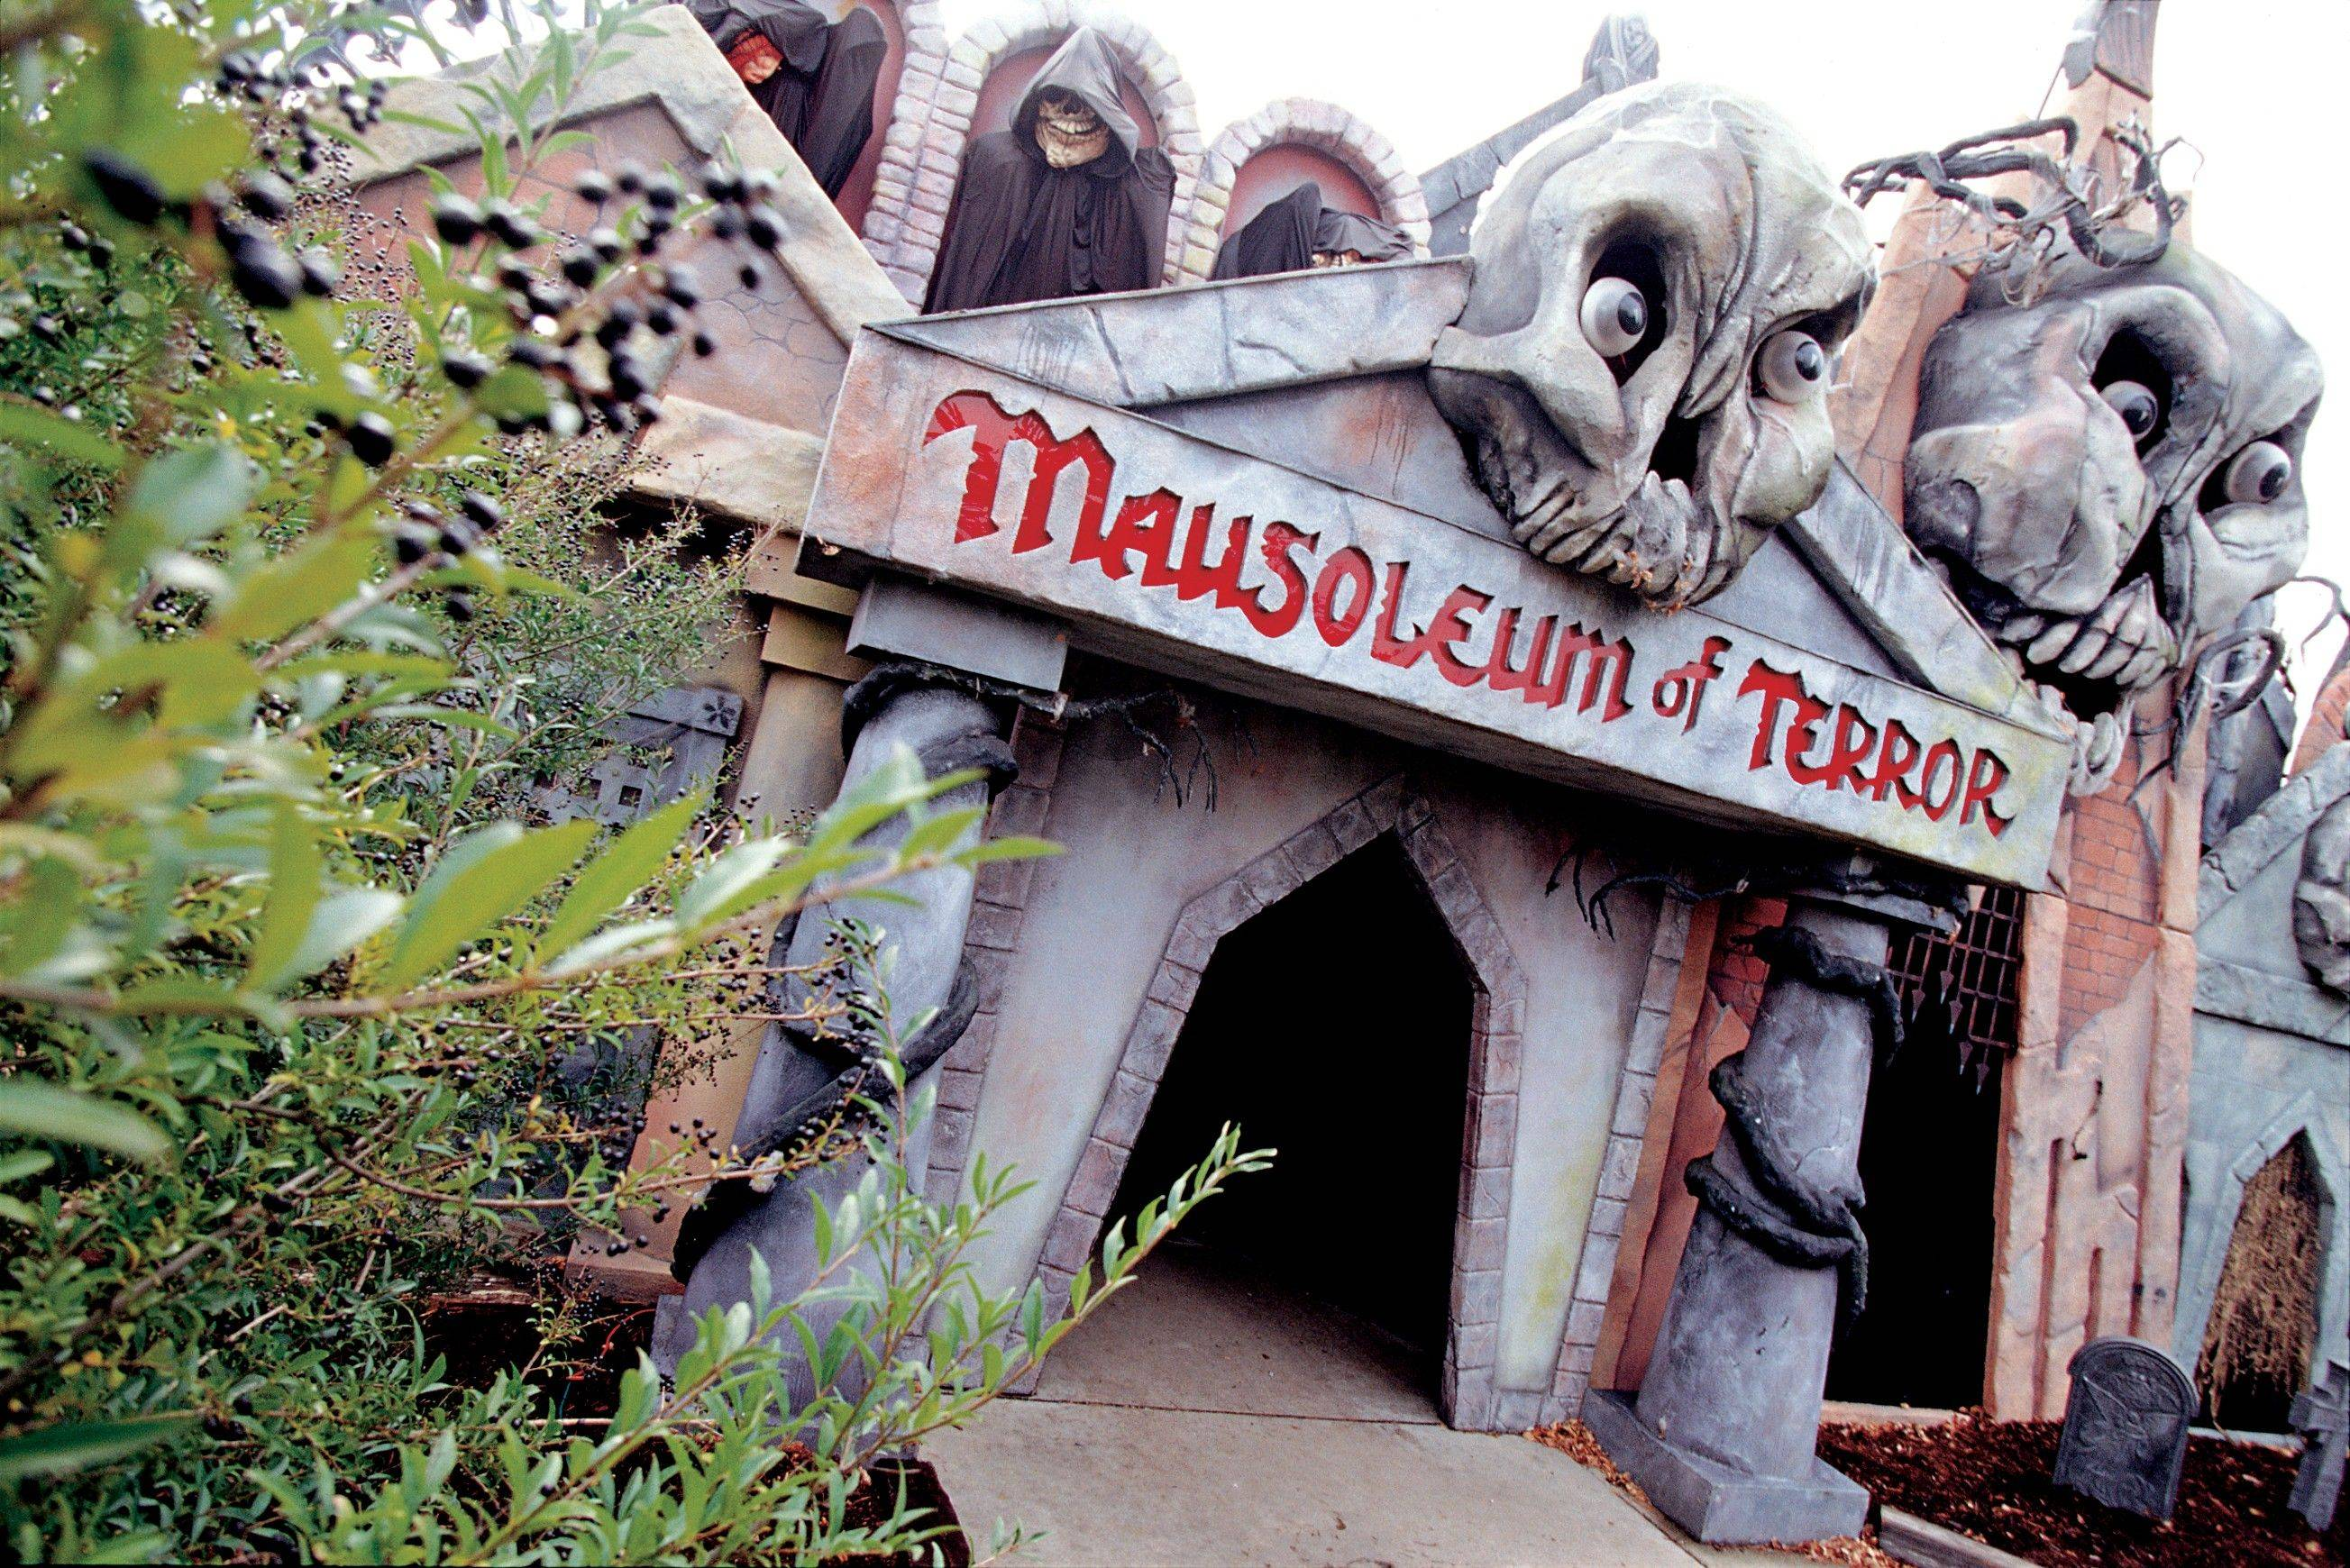 The Mausoleum of Terror is one of the attractions at Great America's Fright Fest in Gurnee.